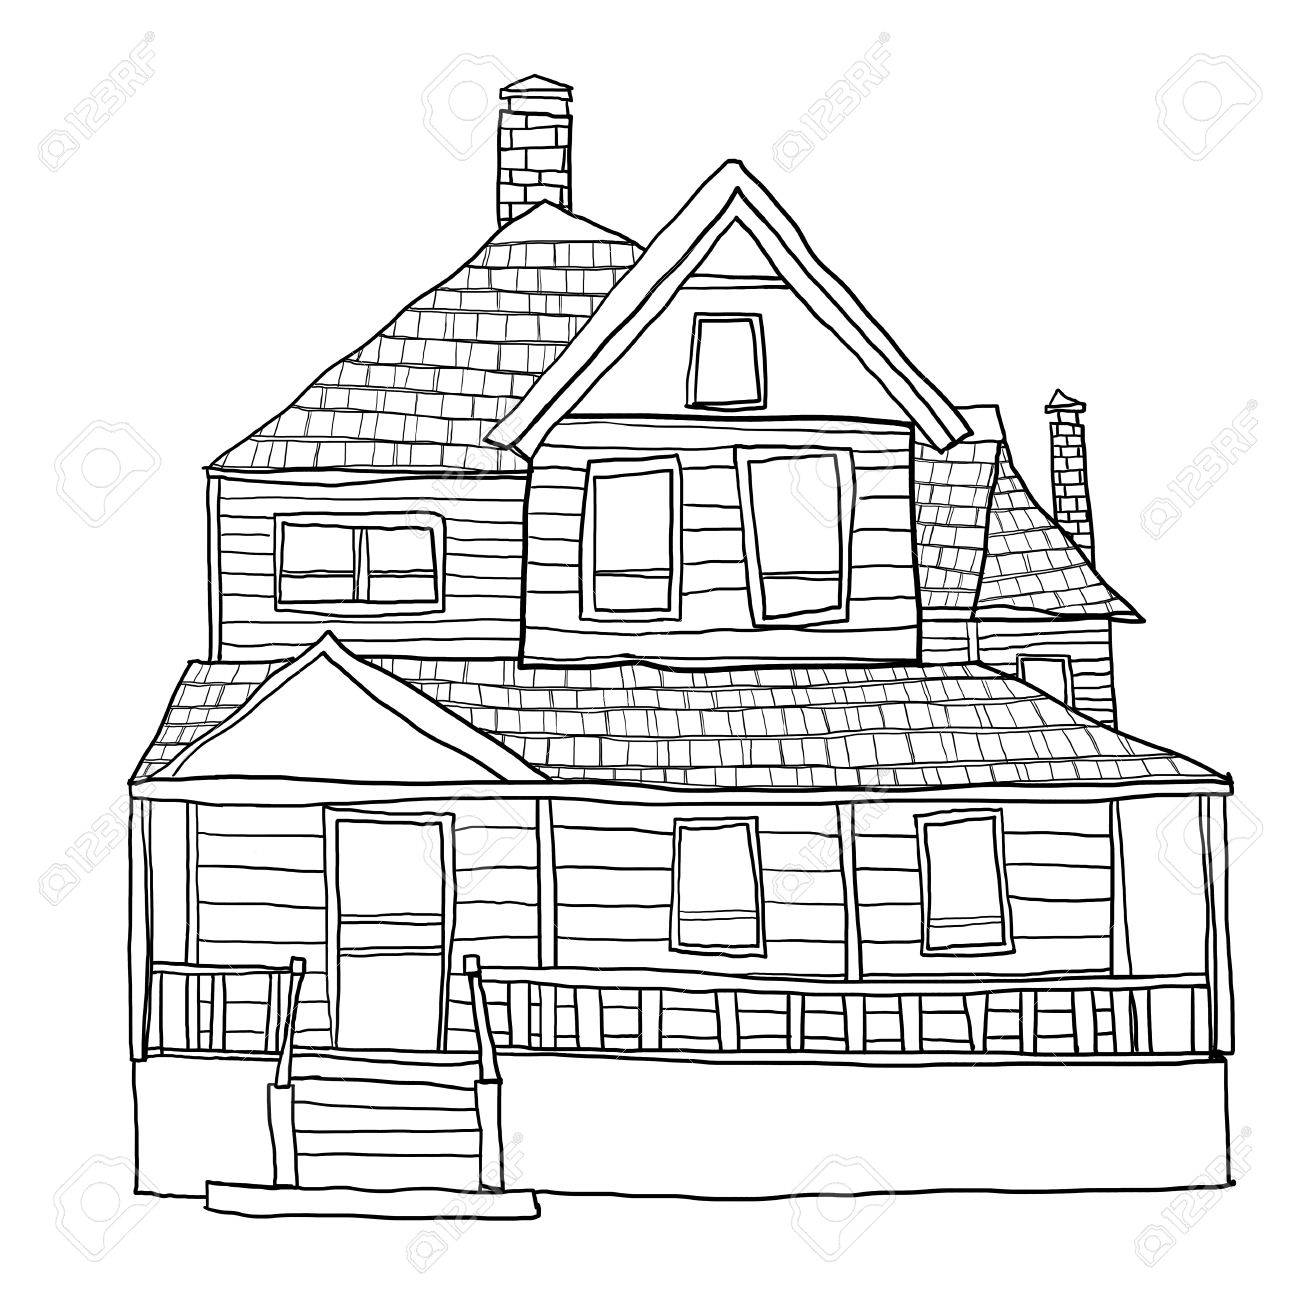 Vintage House Line Art Cute Illustration Stock Photo Picture